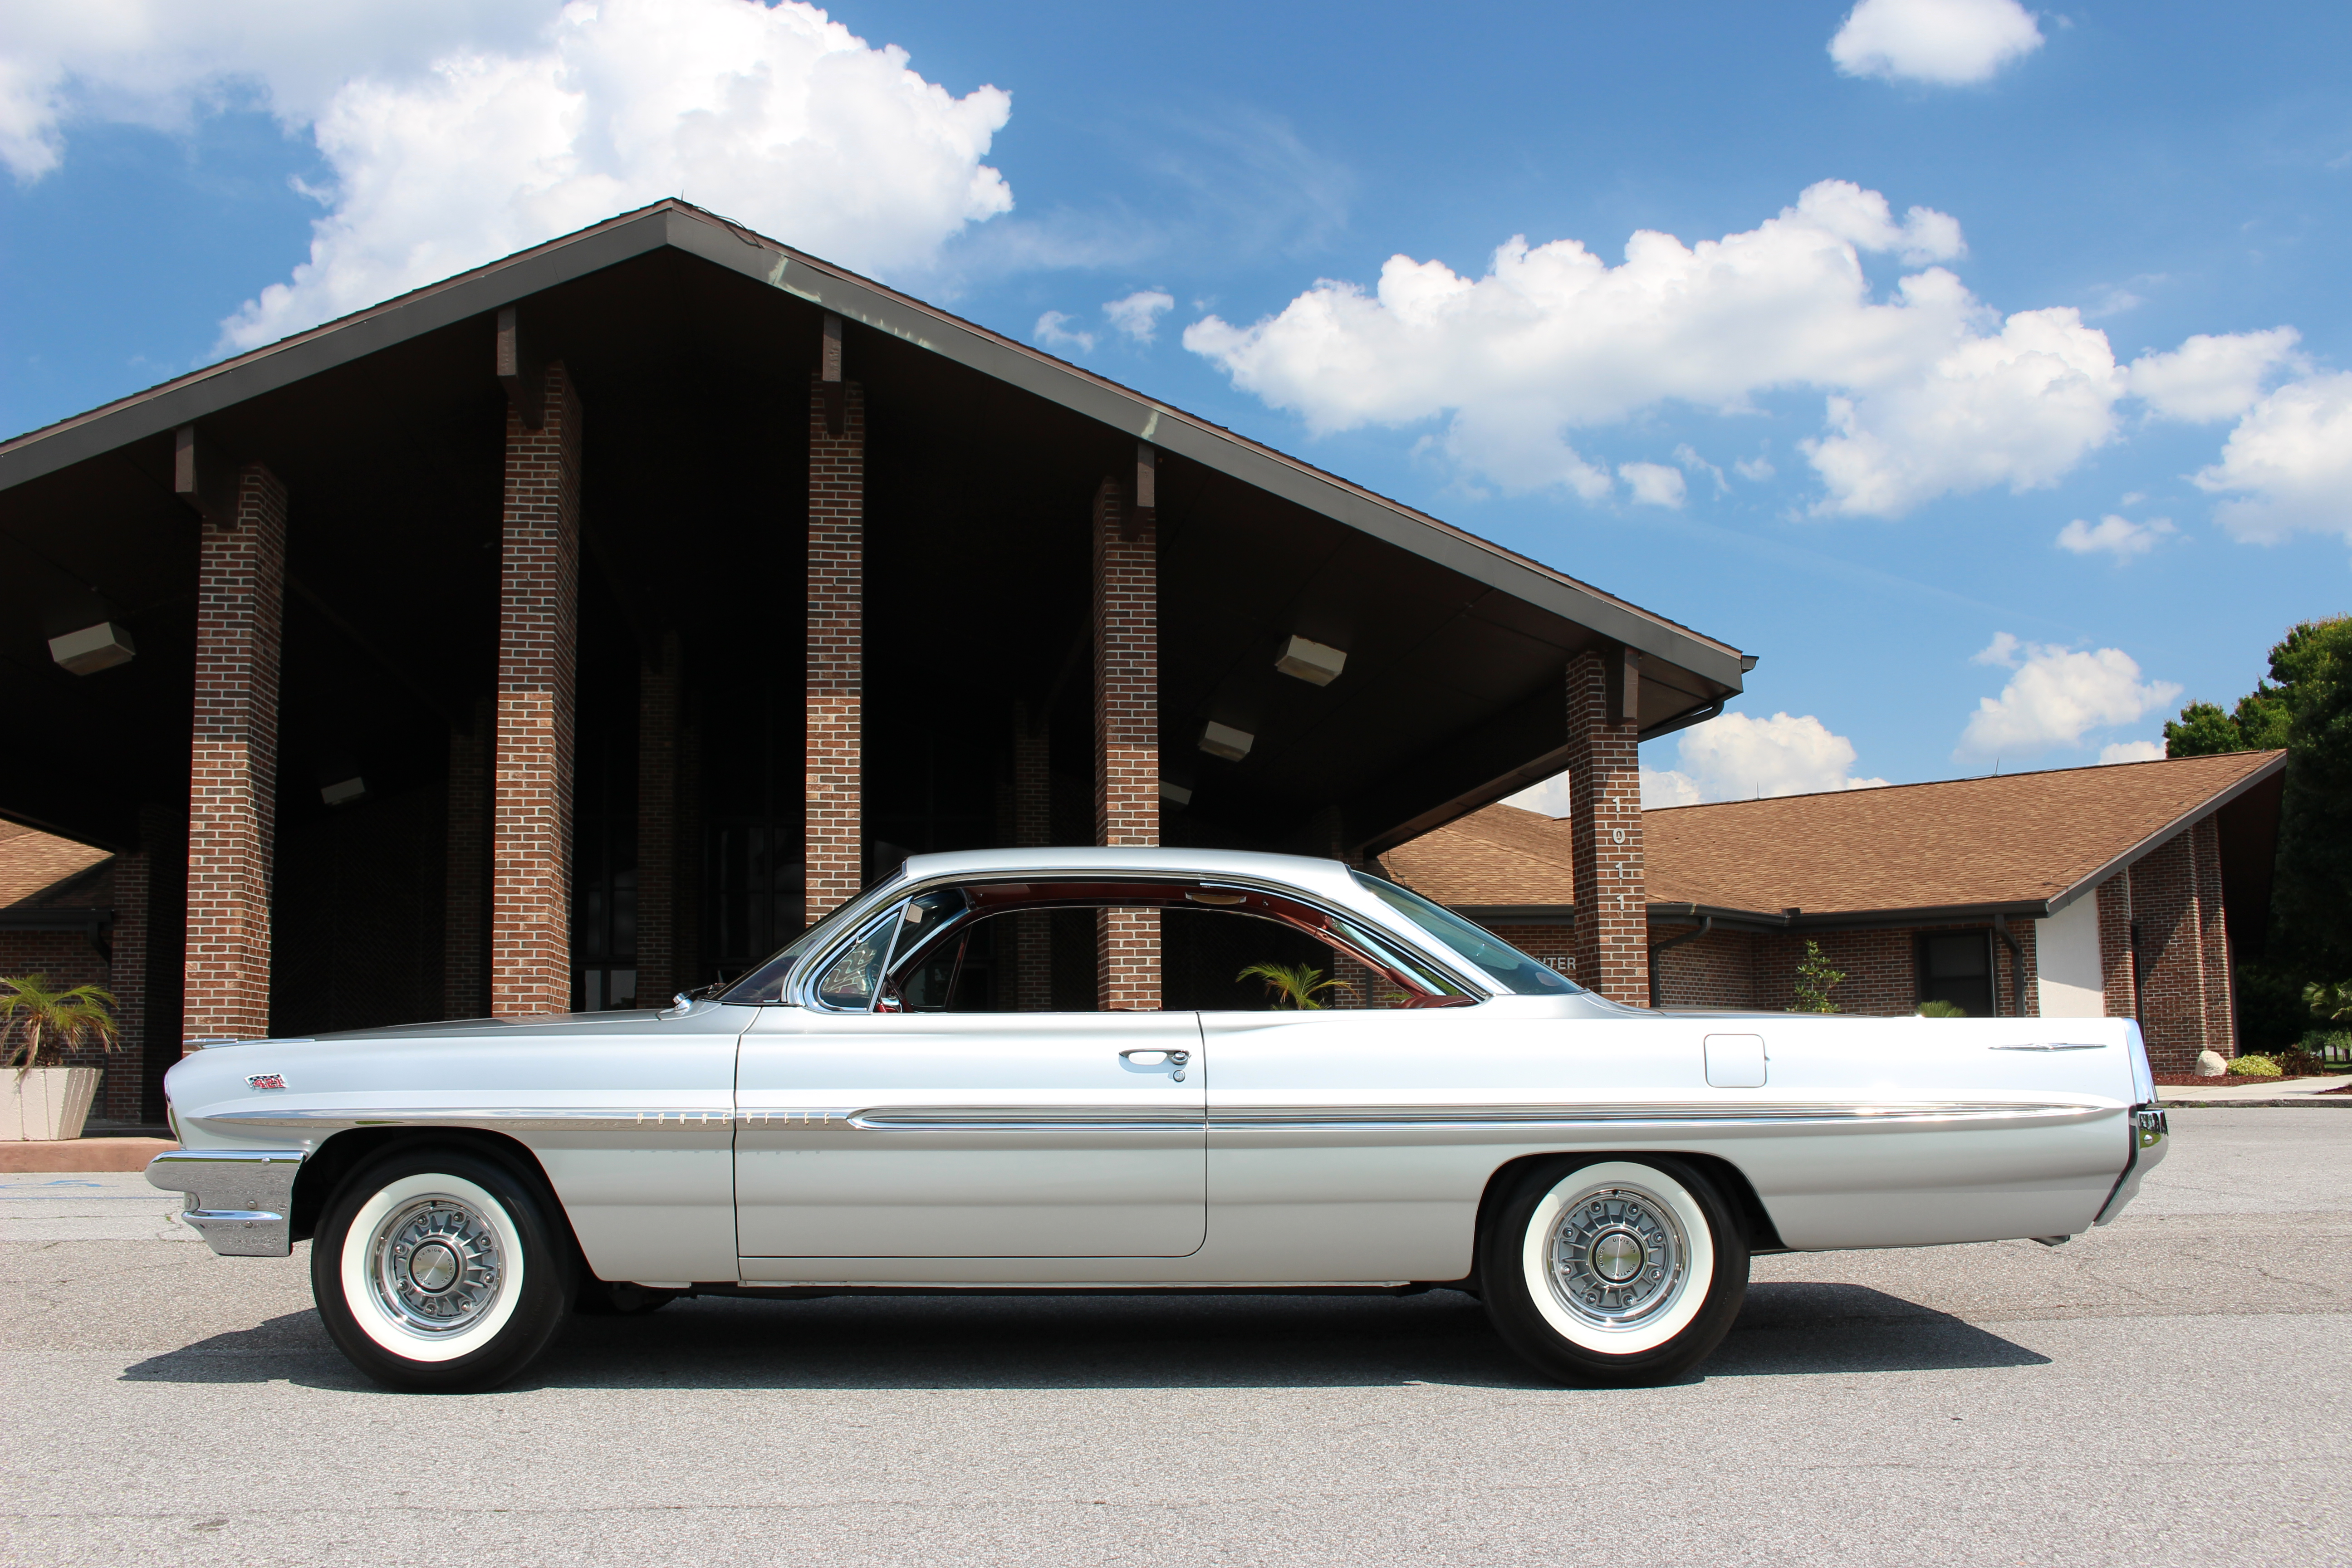 Richmond Gray Metallic was a beautiful and rare color for '61 Pontiacs.